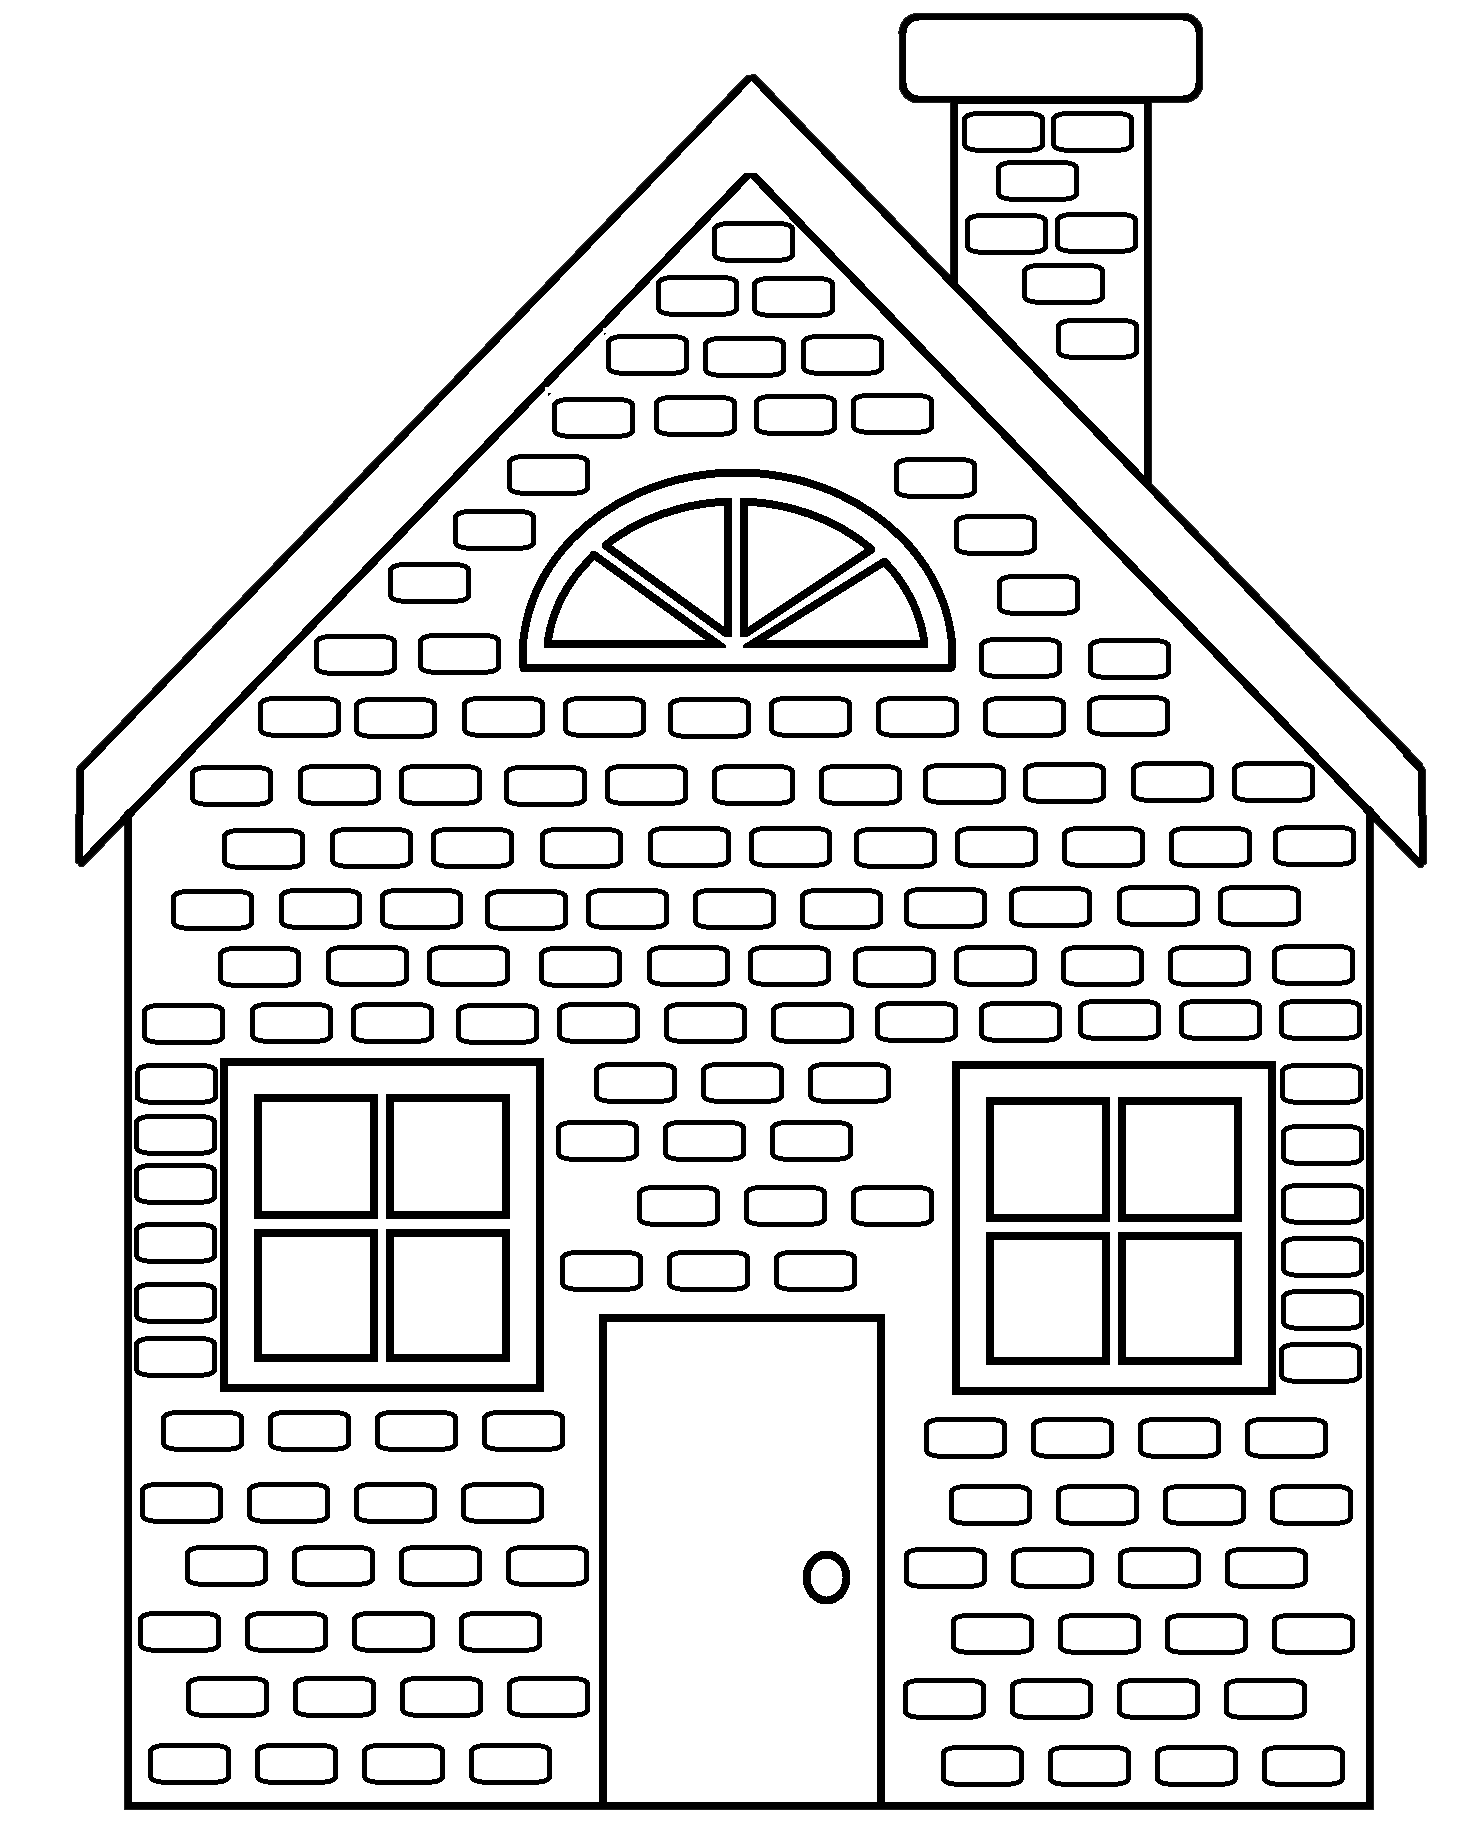 straw house coloring pages - photo#12